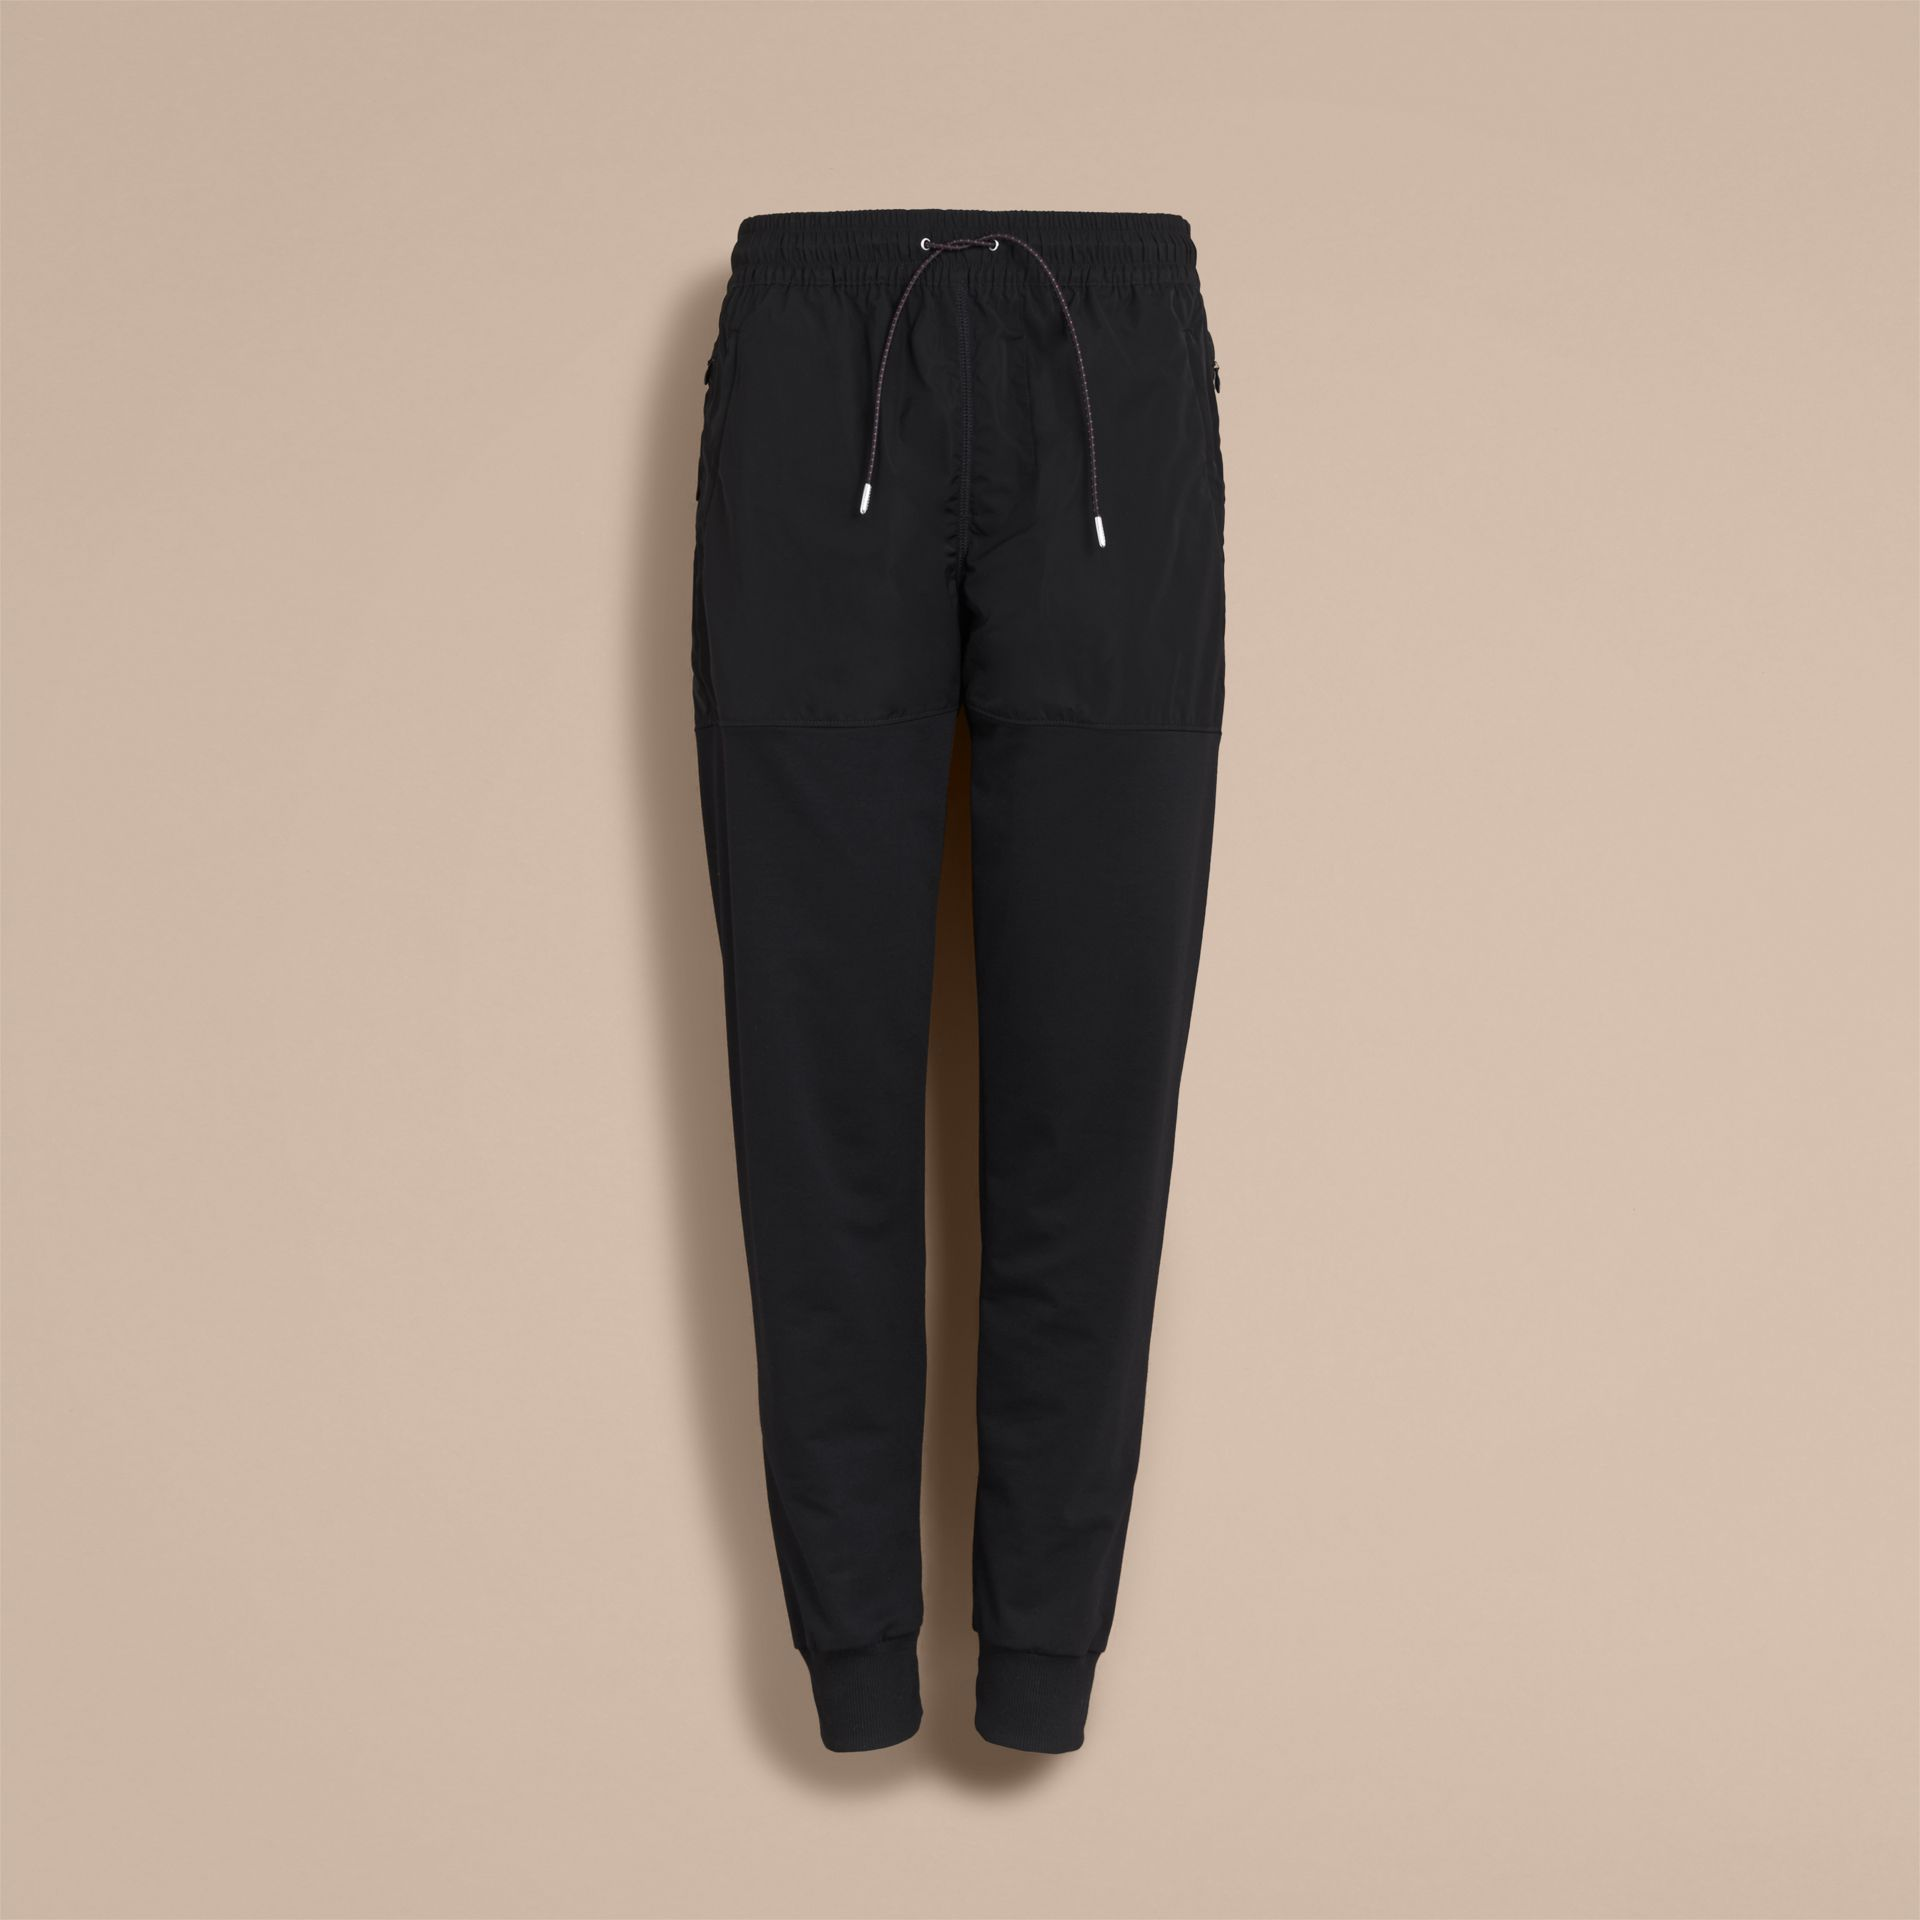 Sport Panel Cotton Blend Sweatpants in Black - Men | Burberry United Kingdom - gallery image 4